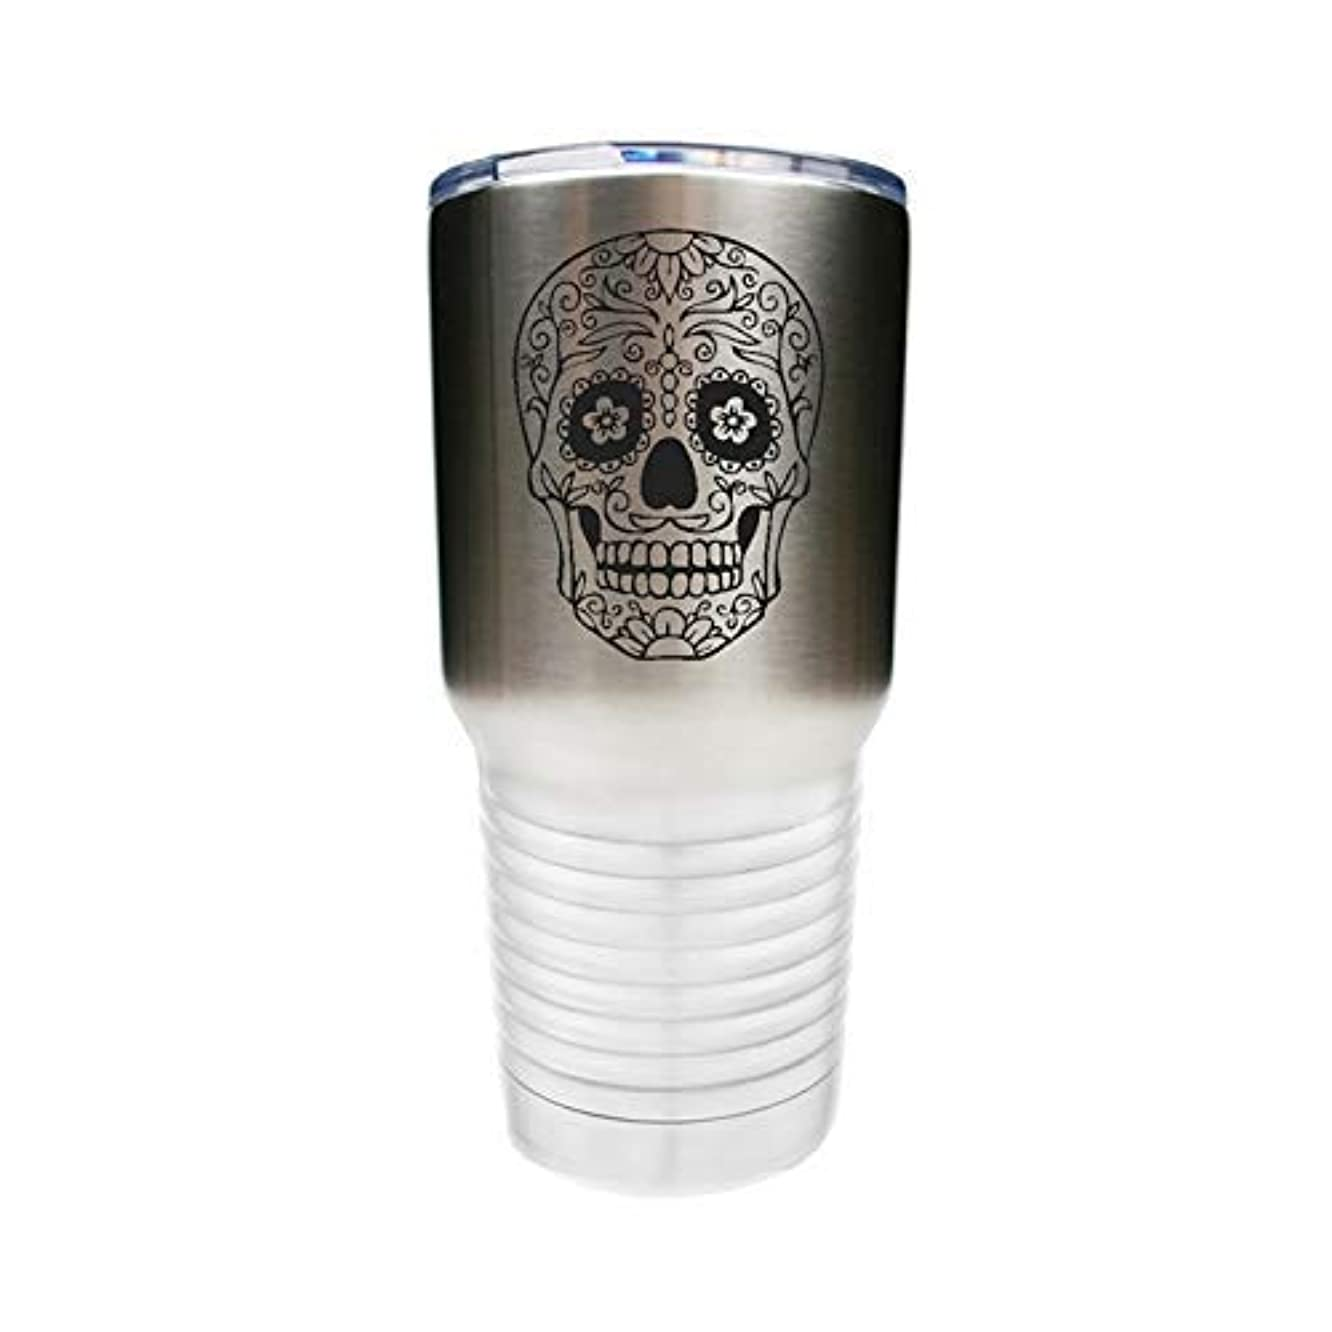 Sugar Skull Tumbler - Stainless Steel w/Clear Lid - Choice of 10 oz, 12 oz, 20 oz, 30 oz, Colors, Name, Letters, Date, Font, Spill Proof Slide Lid, Straw & Your Text - Custom Engraved Gift